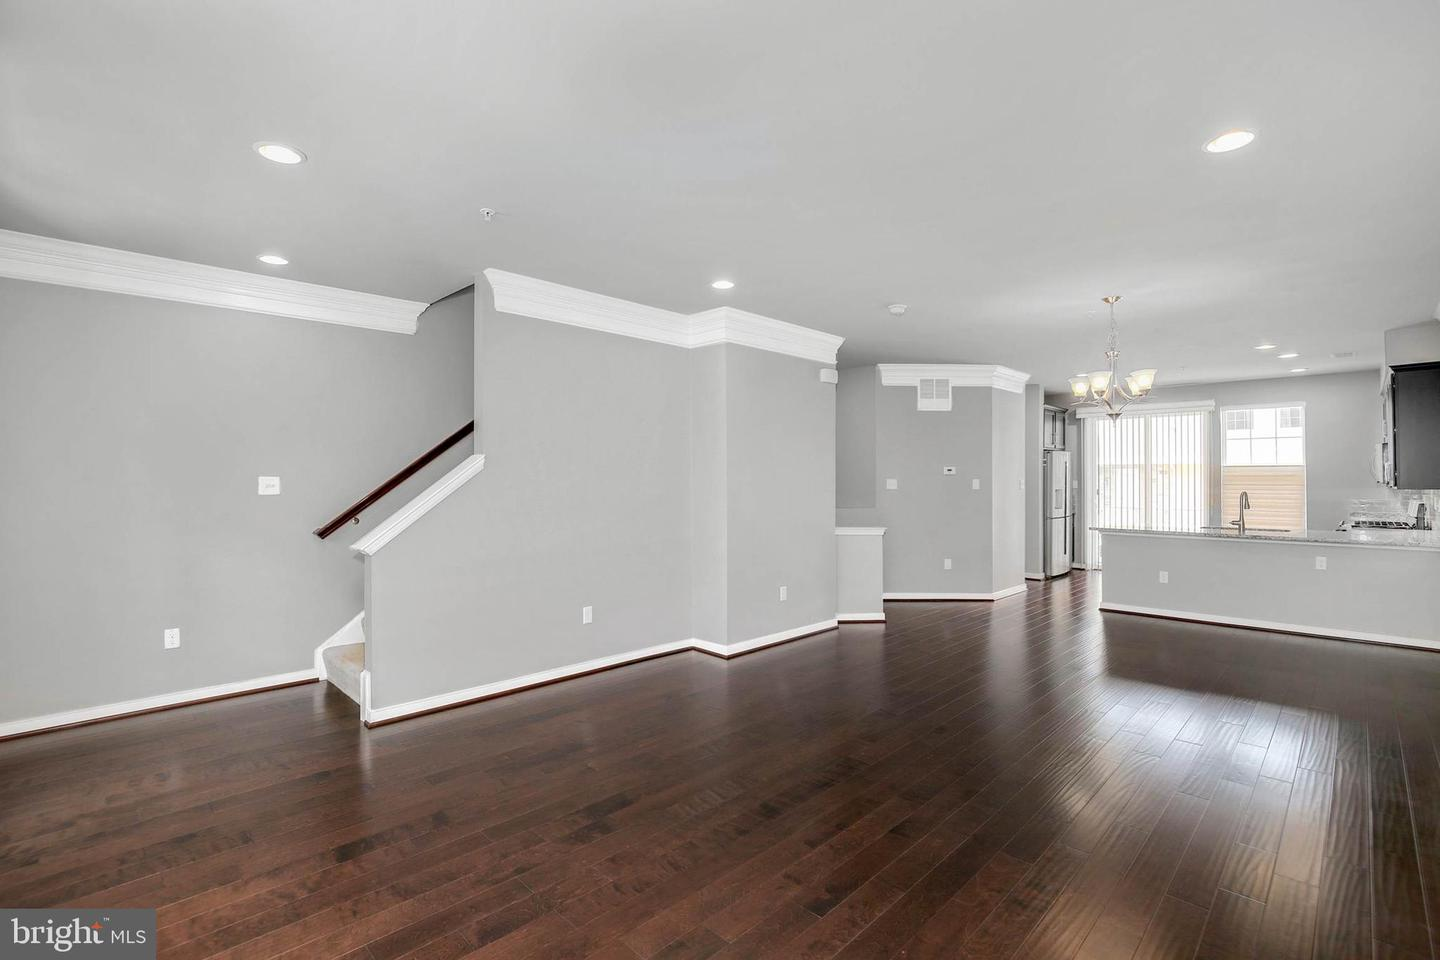 Additional photo for property listing at 127 Fairbanks Dr Gaithersburg, Maryland 20877 United States